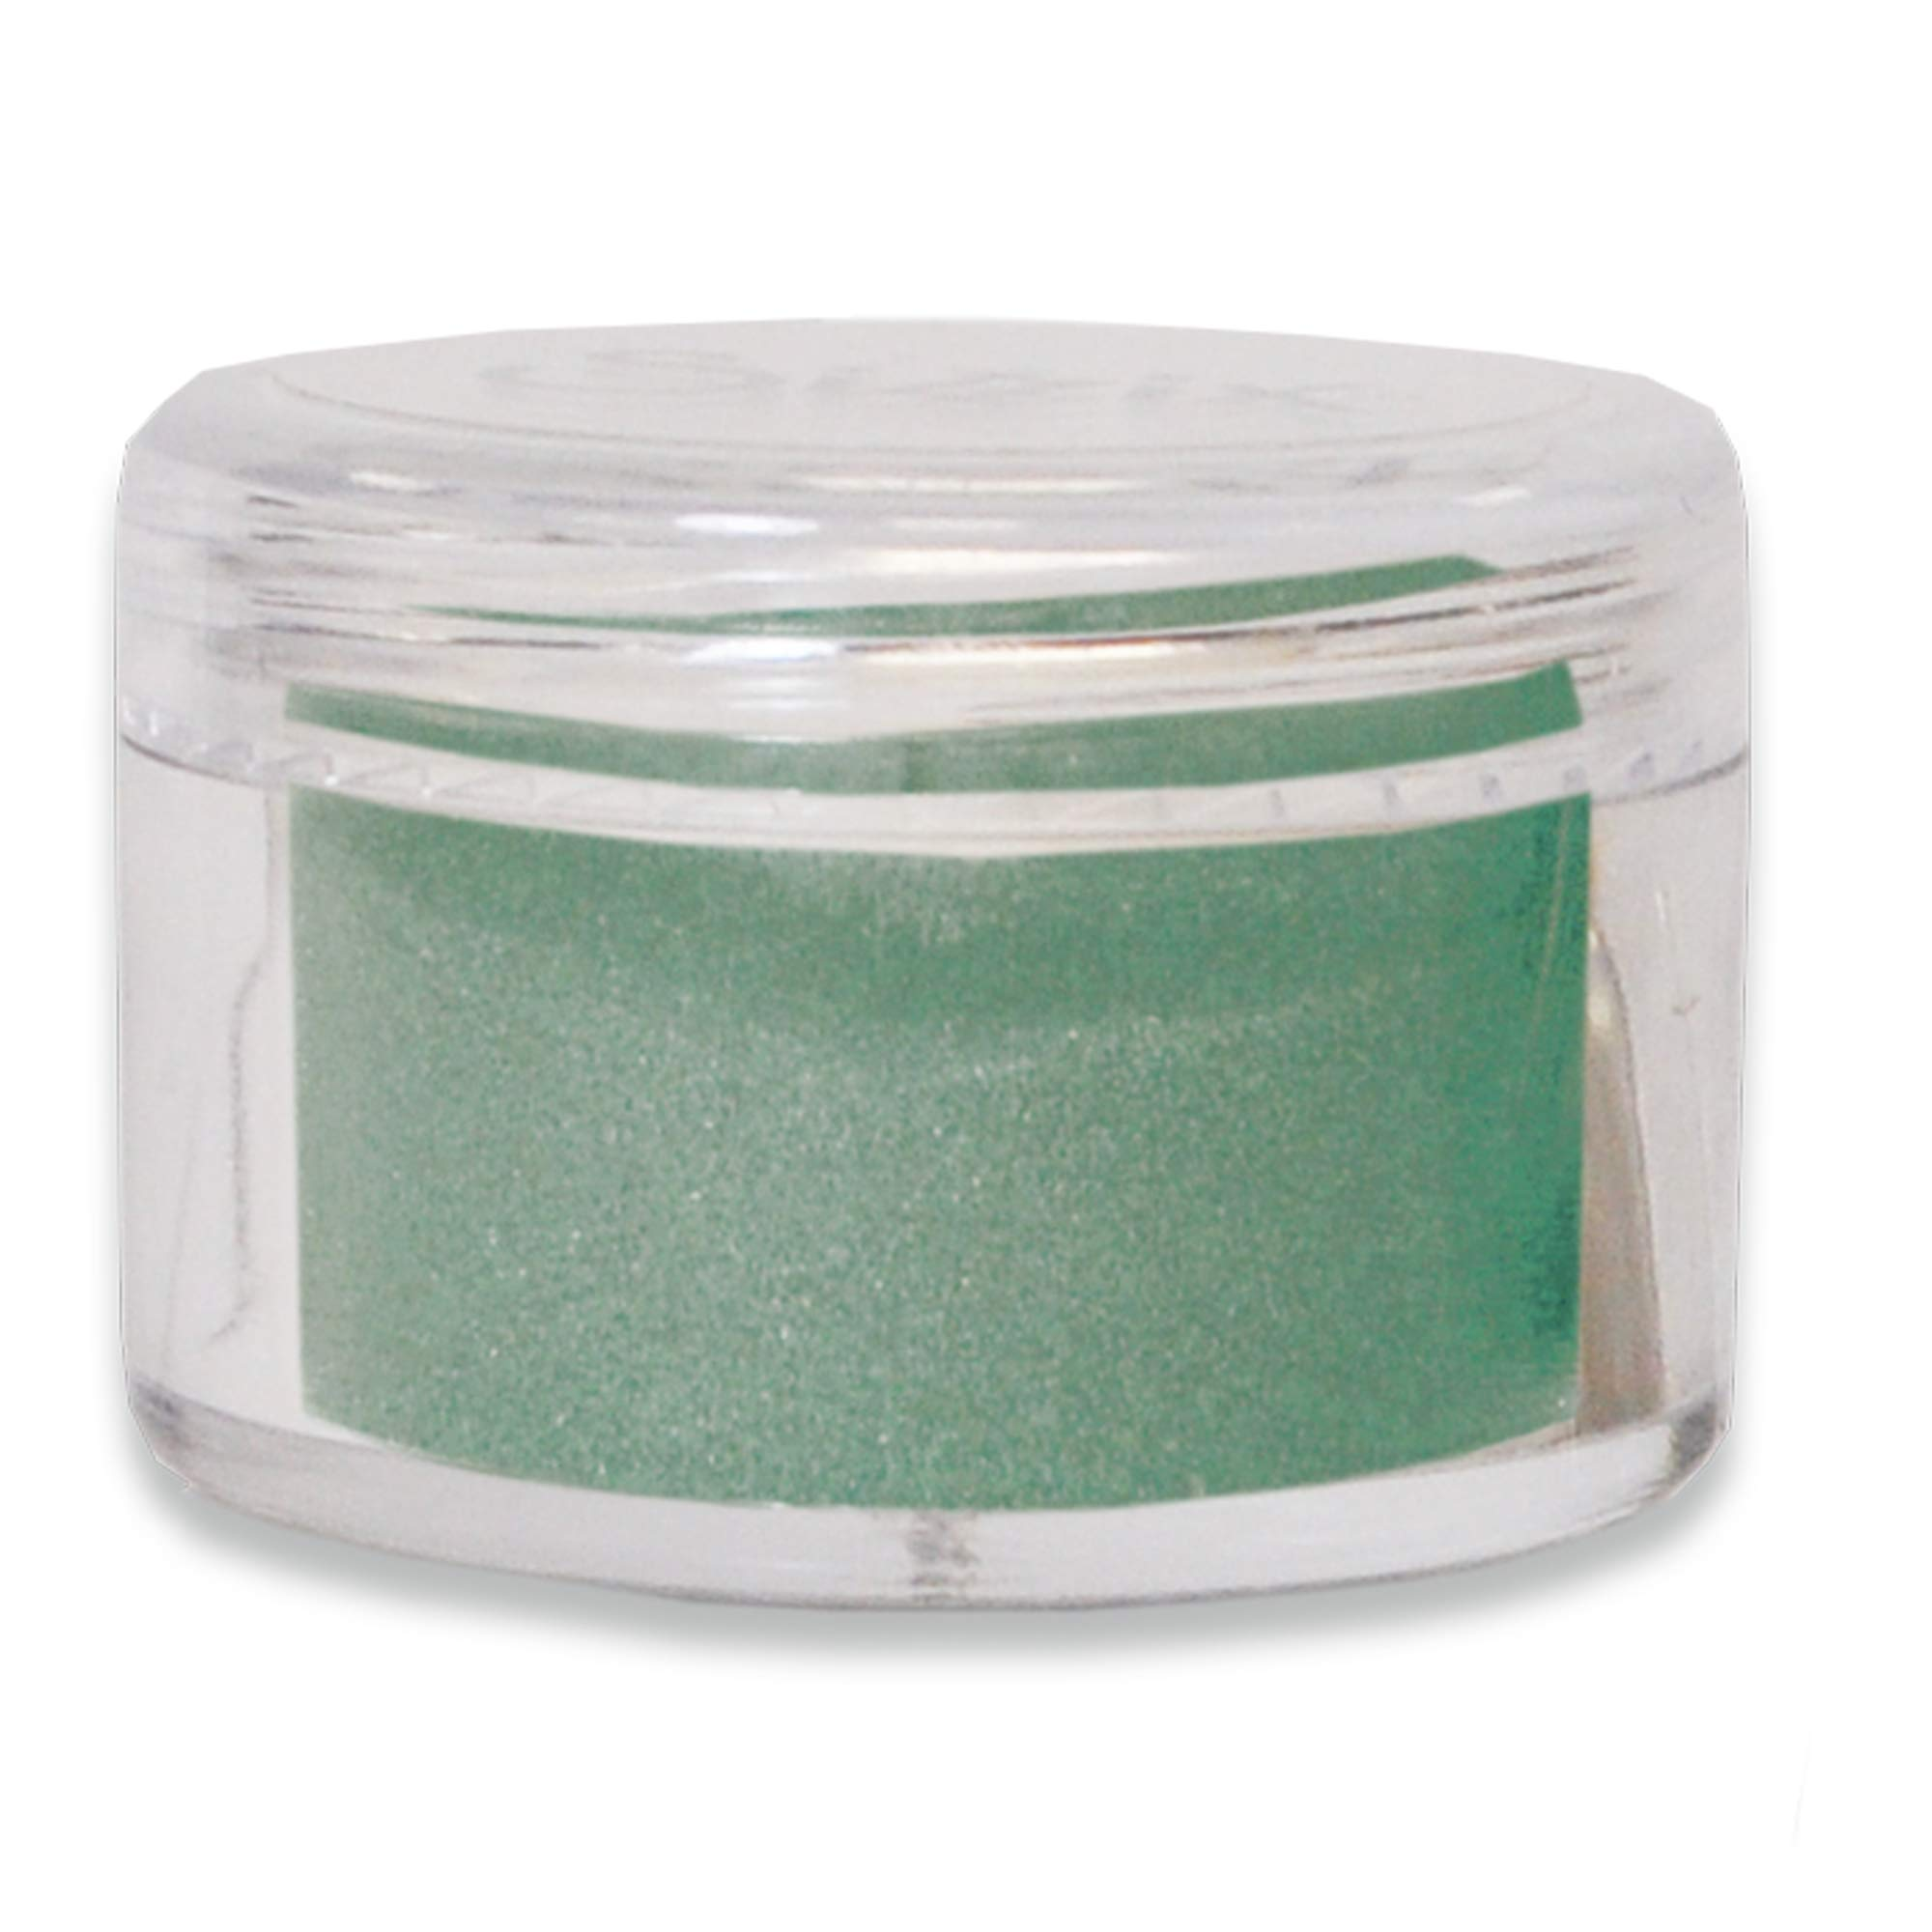 Sizzix Making Essential Opaque Agave 12g Embossing Powder